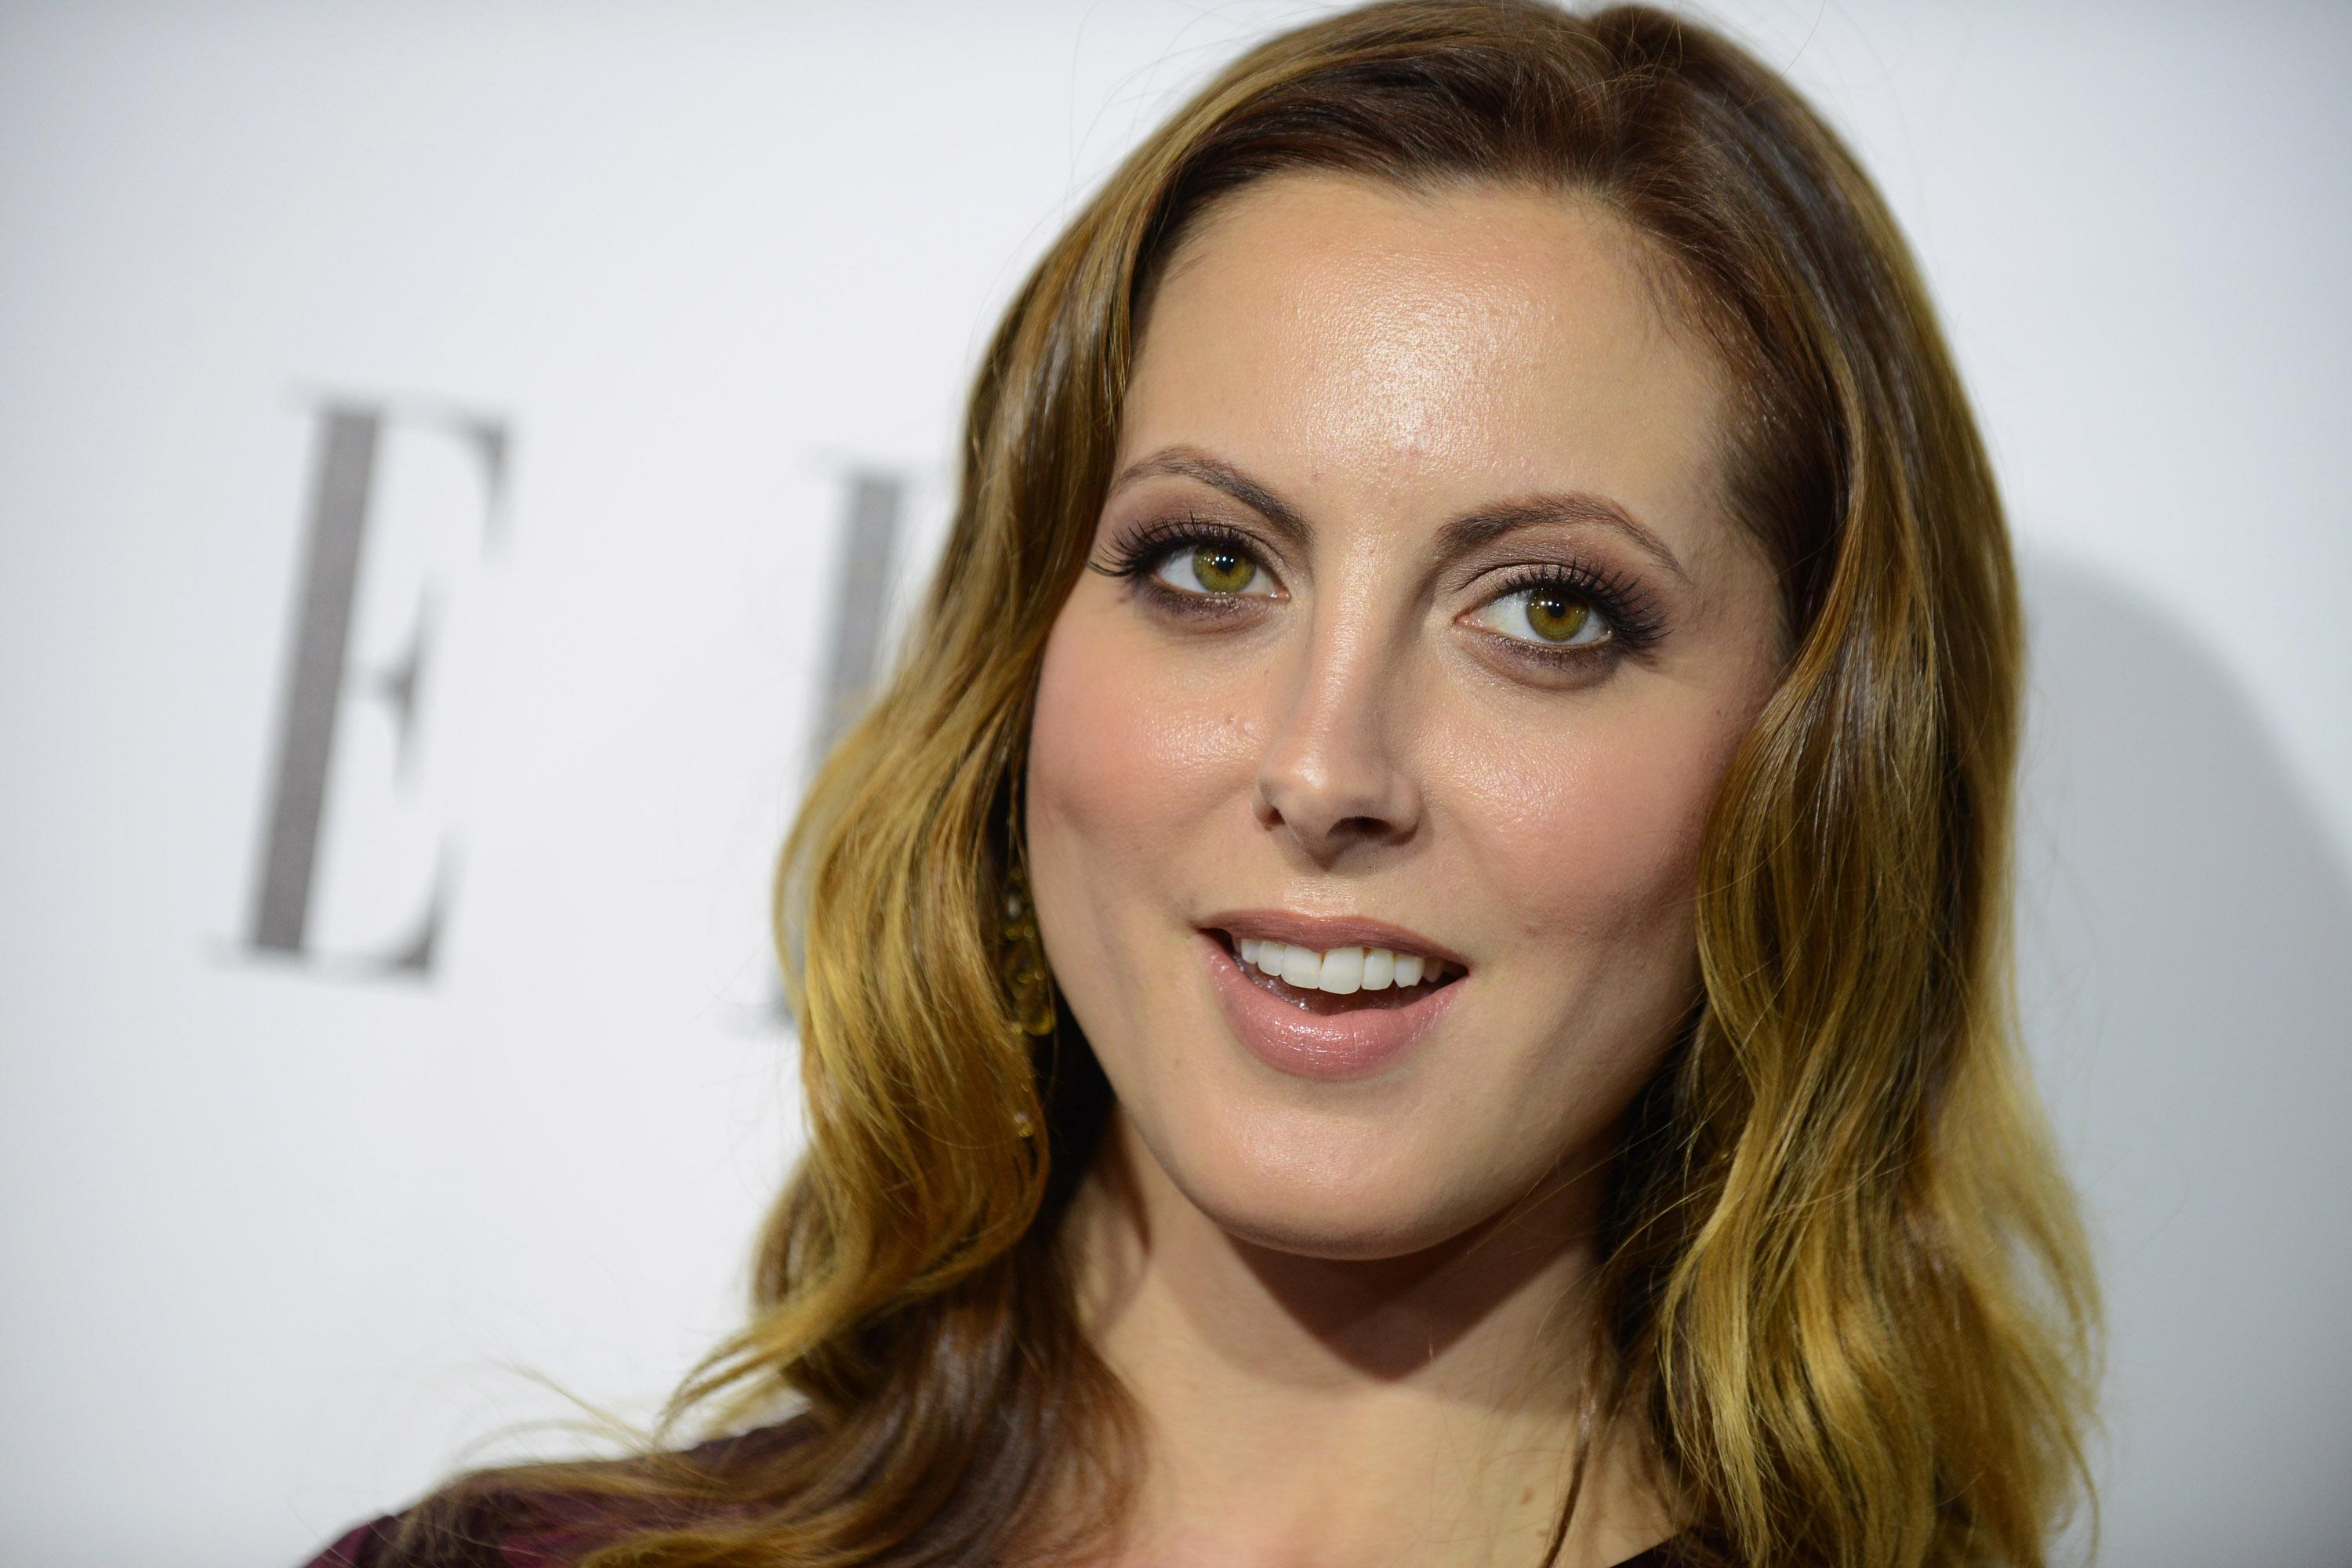 Eva Amurri Martino's family business is growing